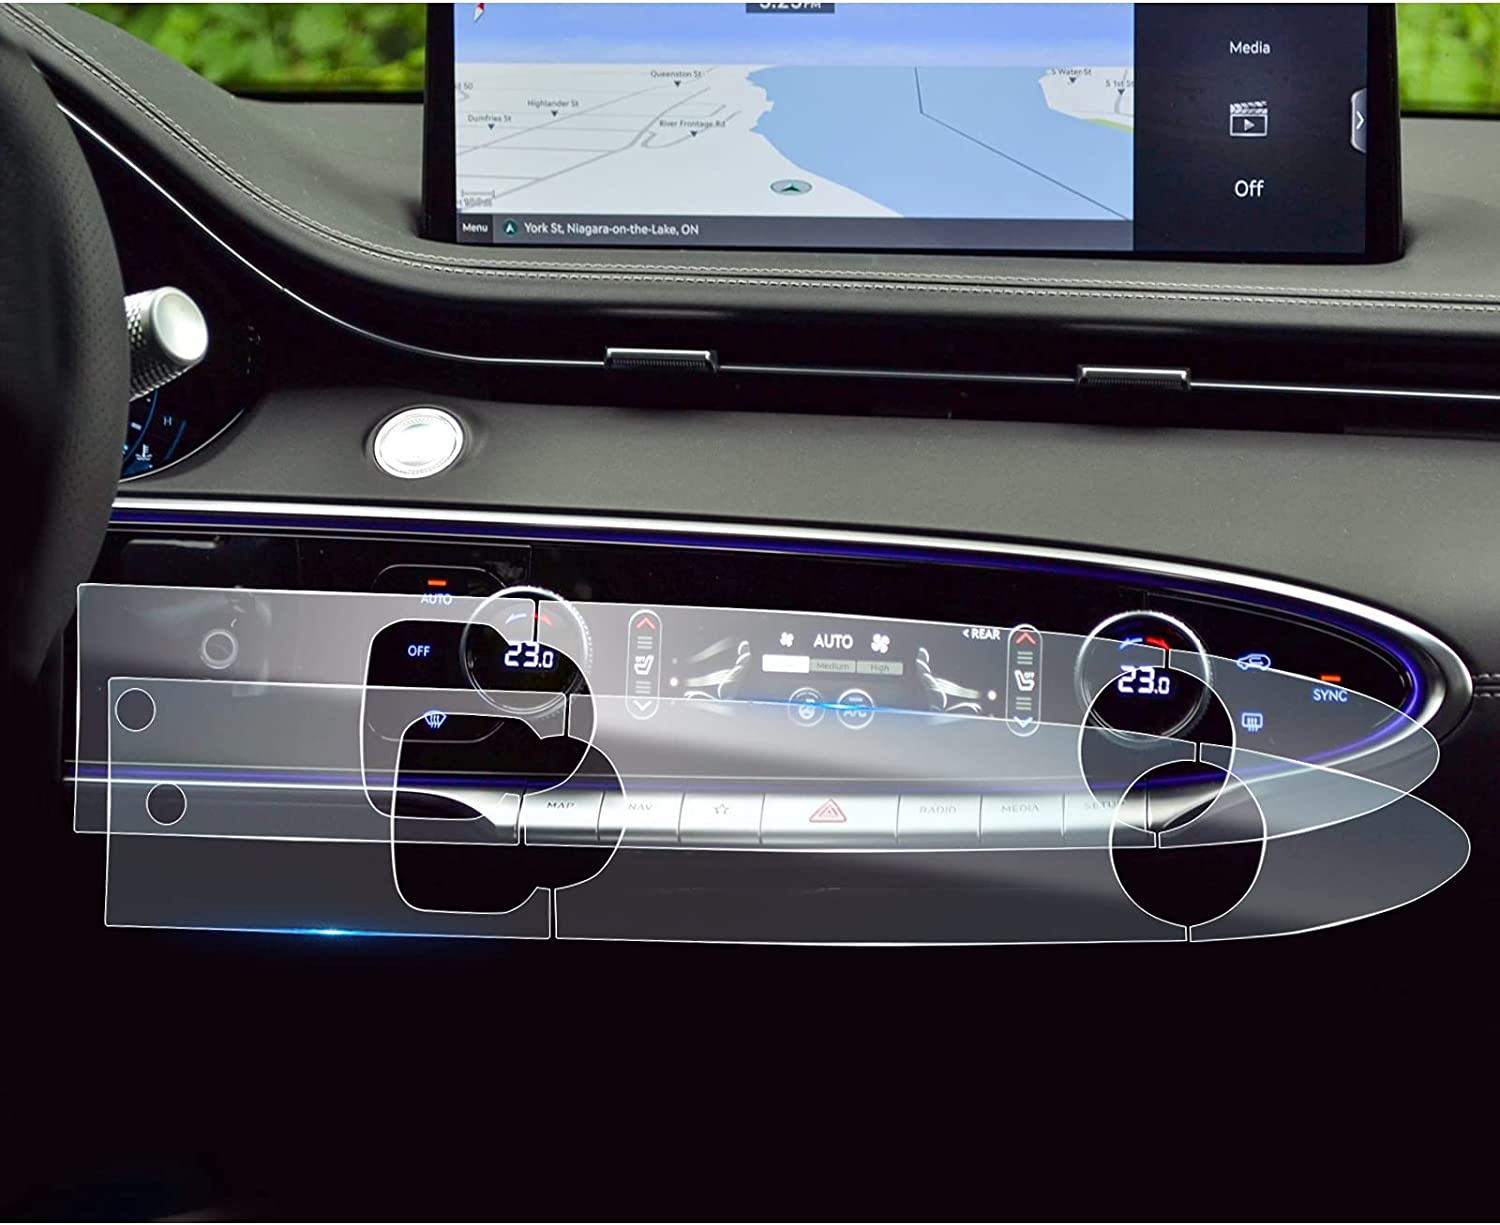 Max 60% OFF LFOTPP Climate Display Control Touch wholesale Protector 2022+ for Screen